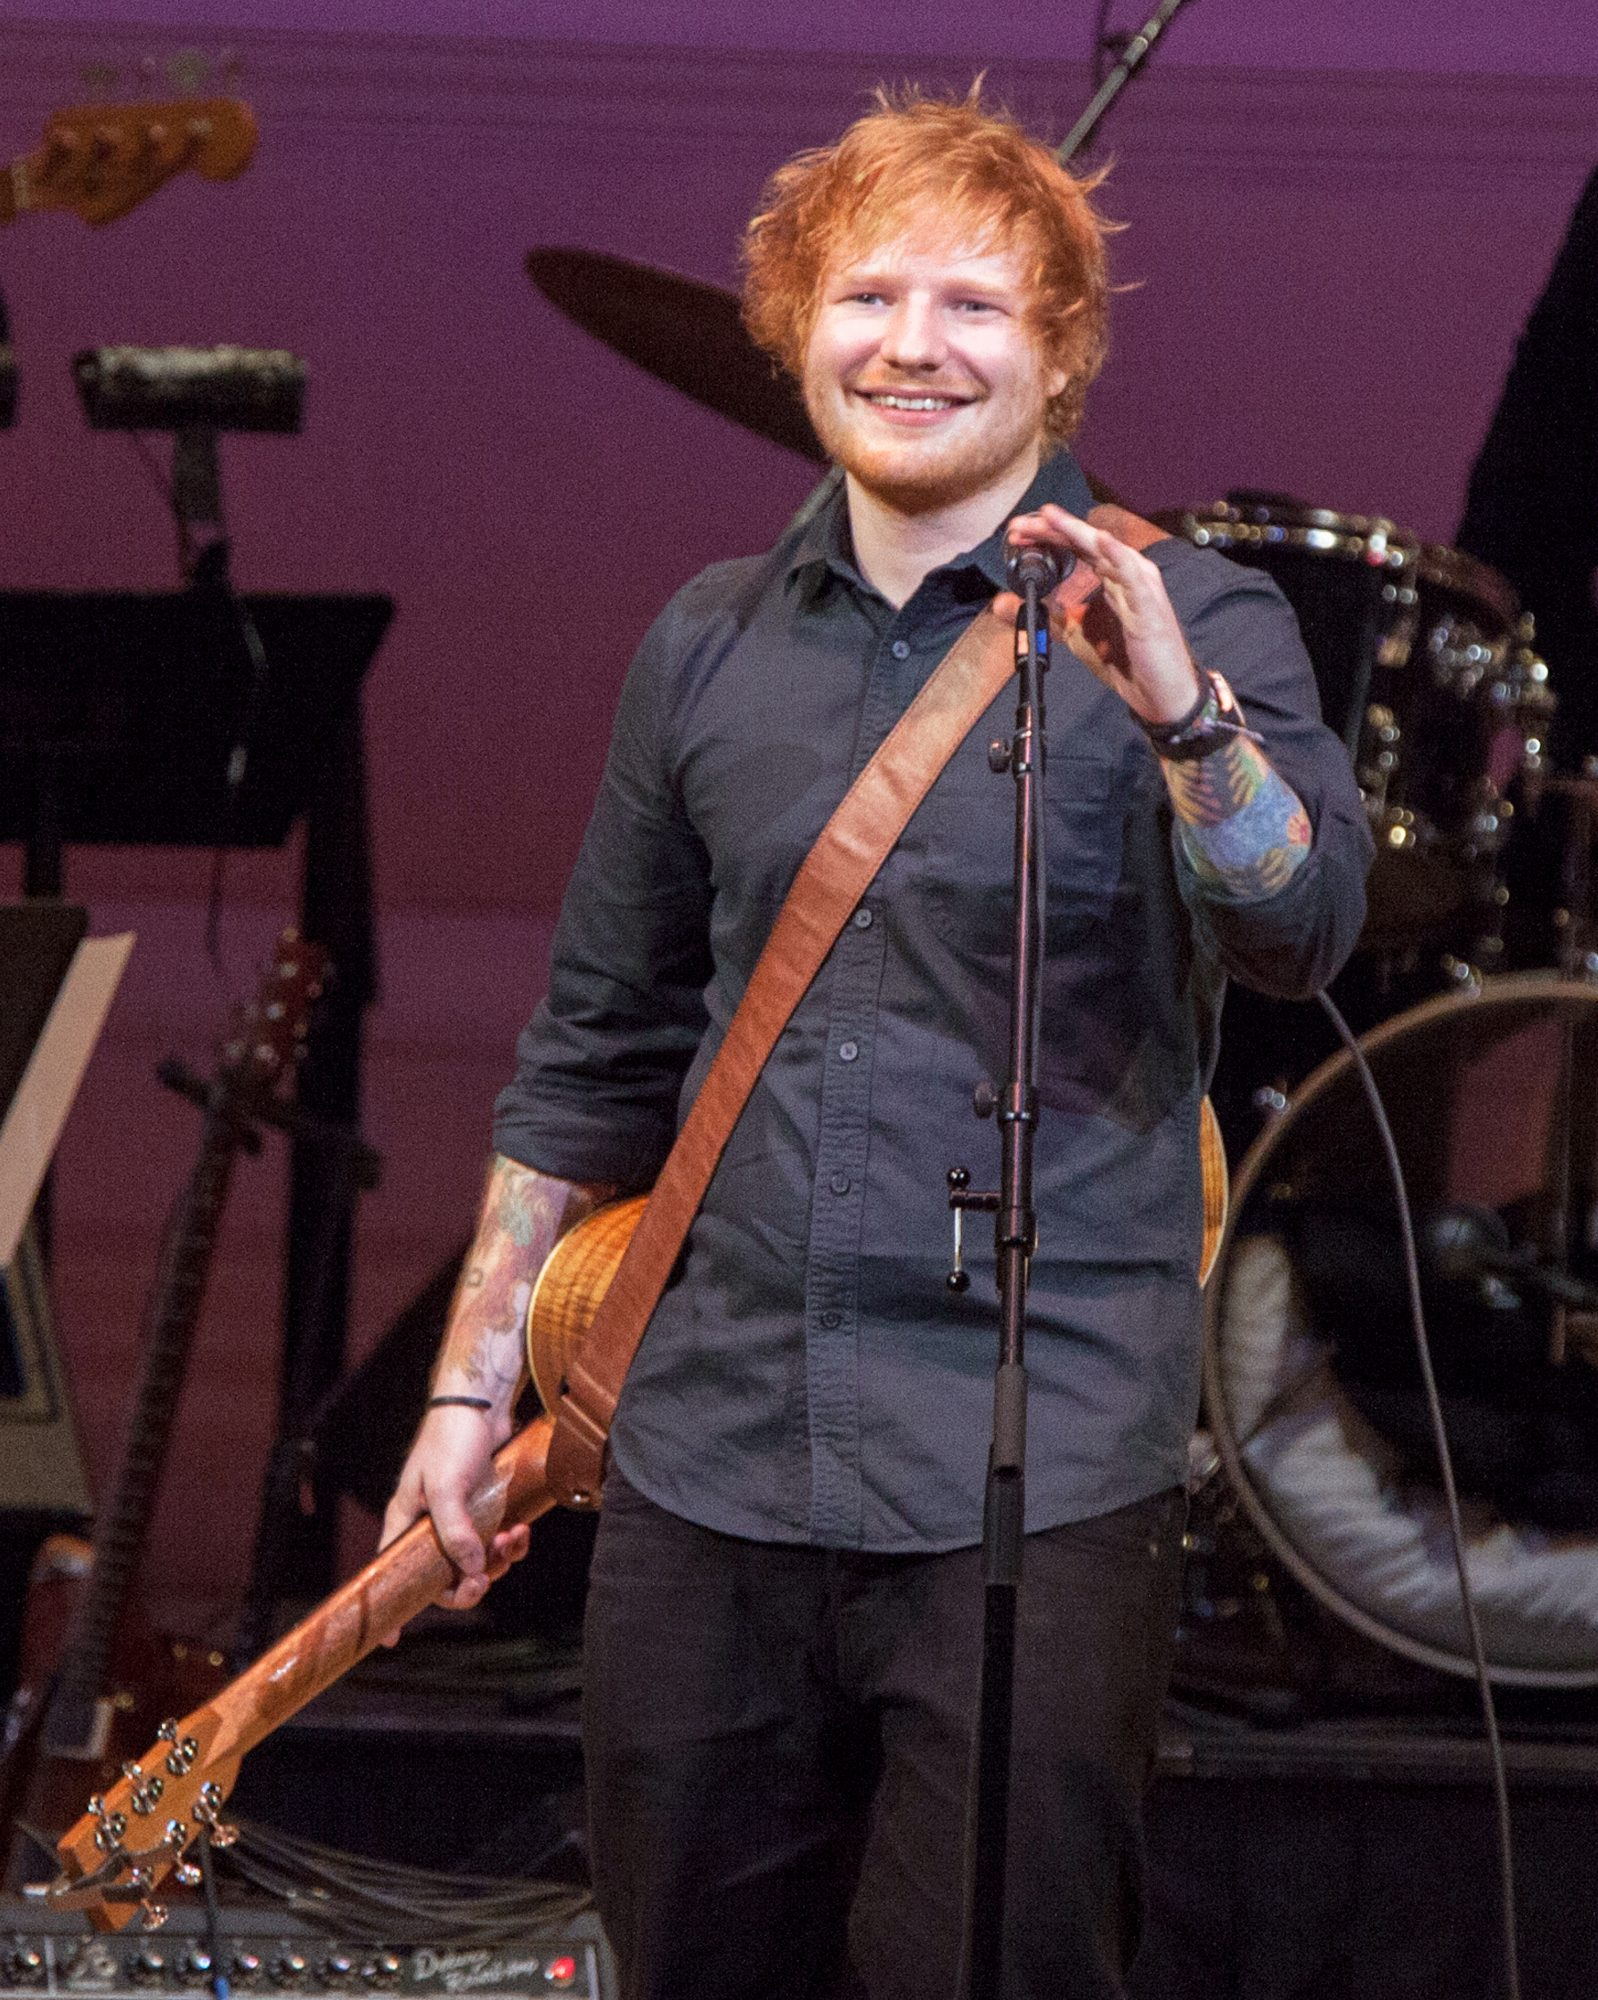 celebrity-wedding-officiants-ed-sheeran-1015.jpg